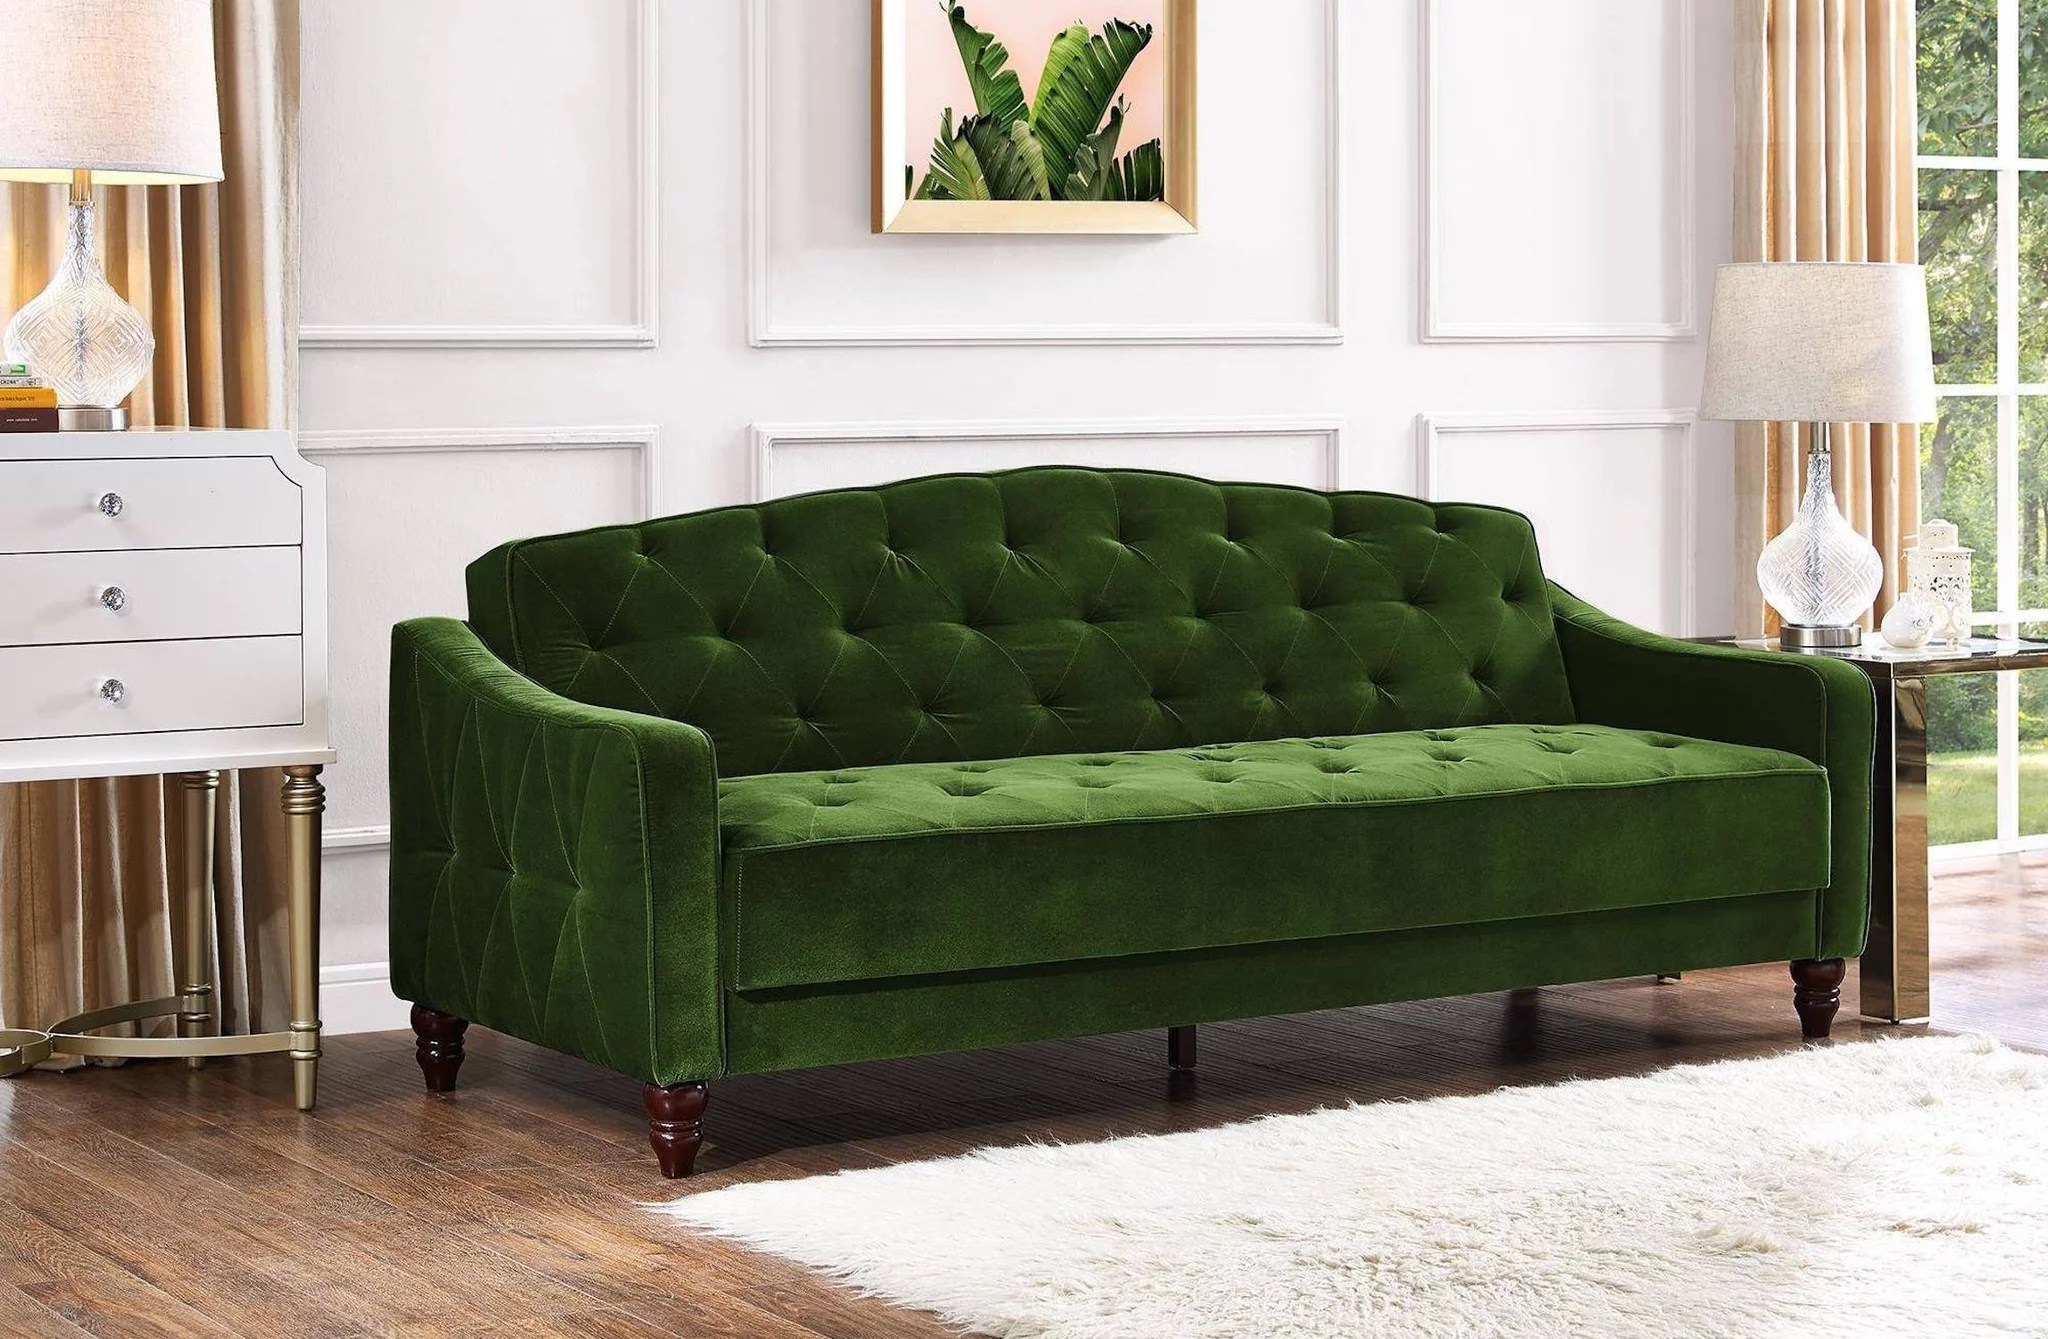 Novogratz Vintage Tufted Sofa Sleeper Review   POPSUGAR Home Every time a new person walks into my apartment  they ask me the same exact  question   OMG  where did you get your couch   It s a gorgeous green  velvet